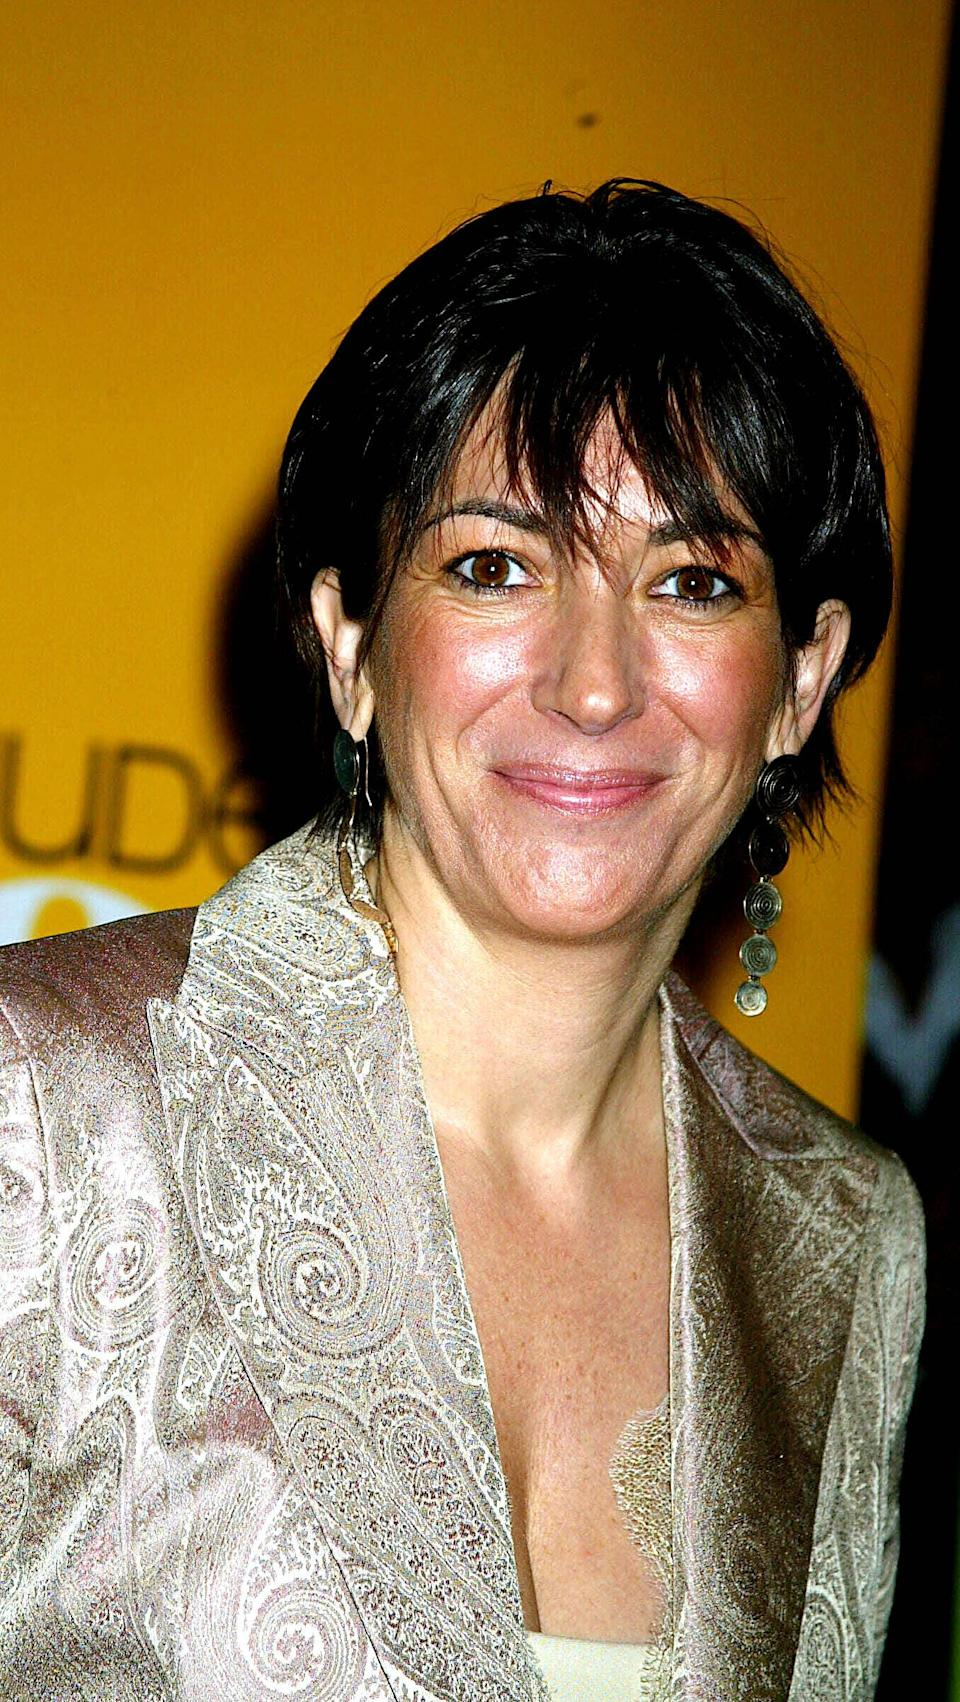 Ghislaine Maxwell pictured in New York in 2004 (Photo: Globe / MediaPunch/MediaPunch/IPx)